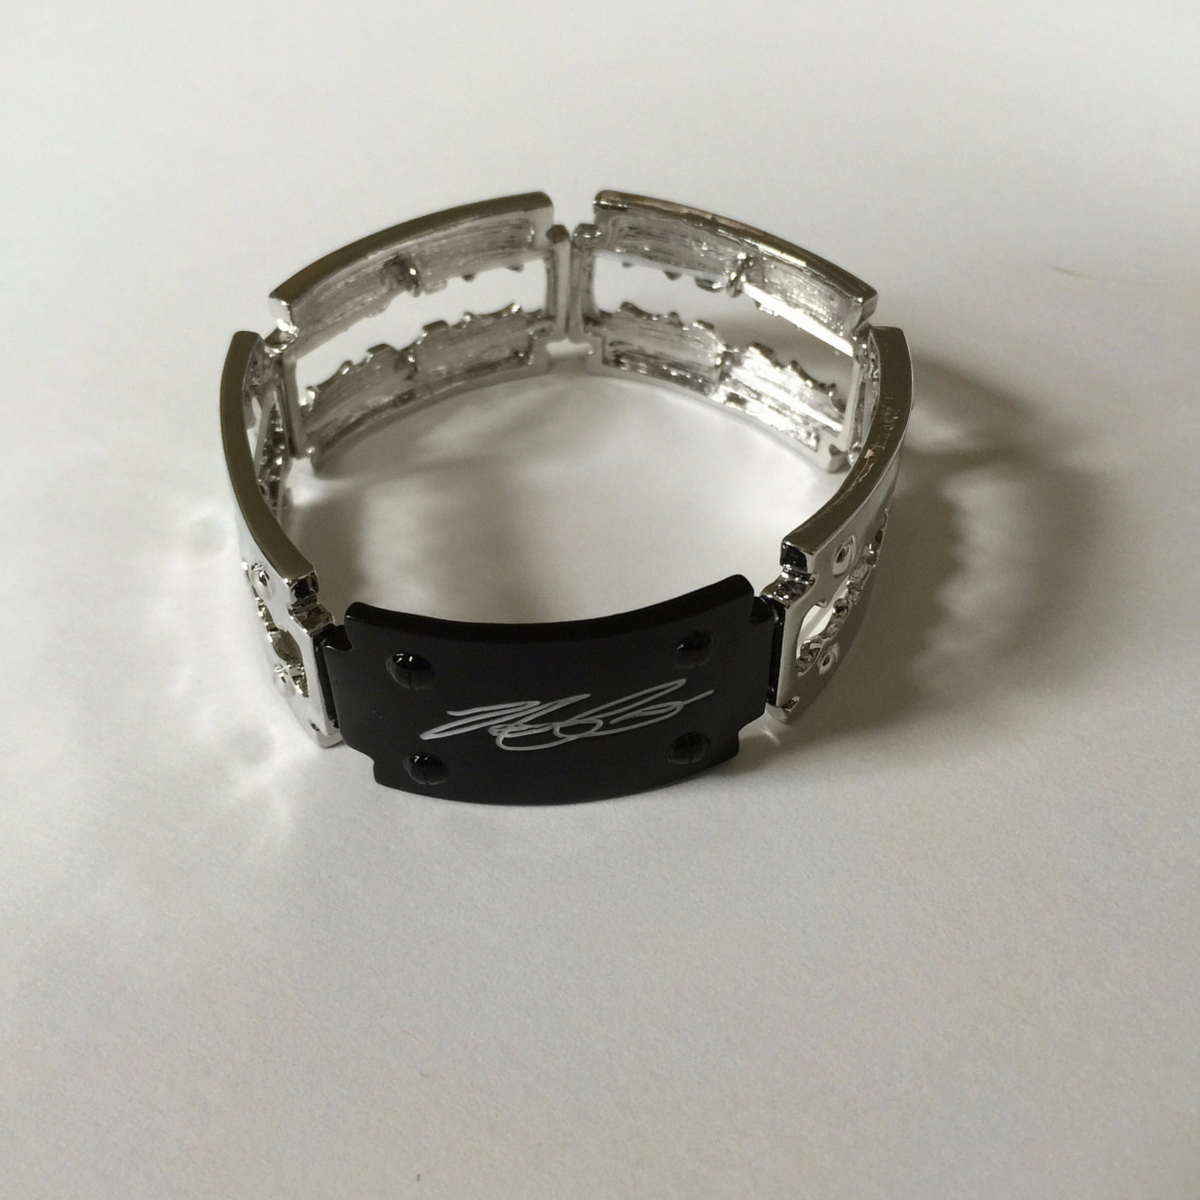 Silver Signature Black Background Bracelet - The Amit Corso Collection